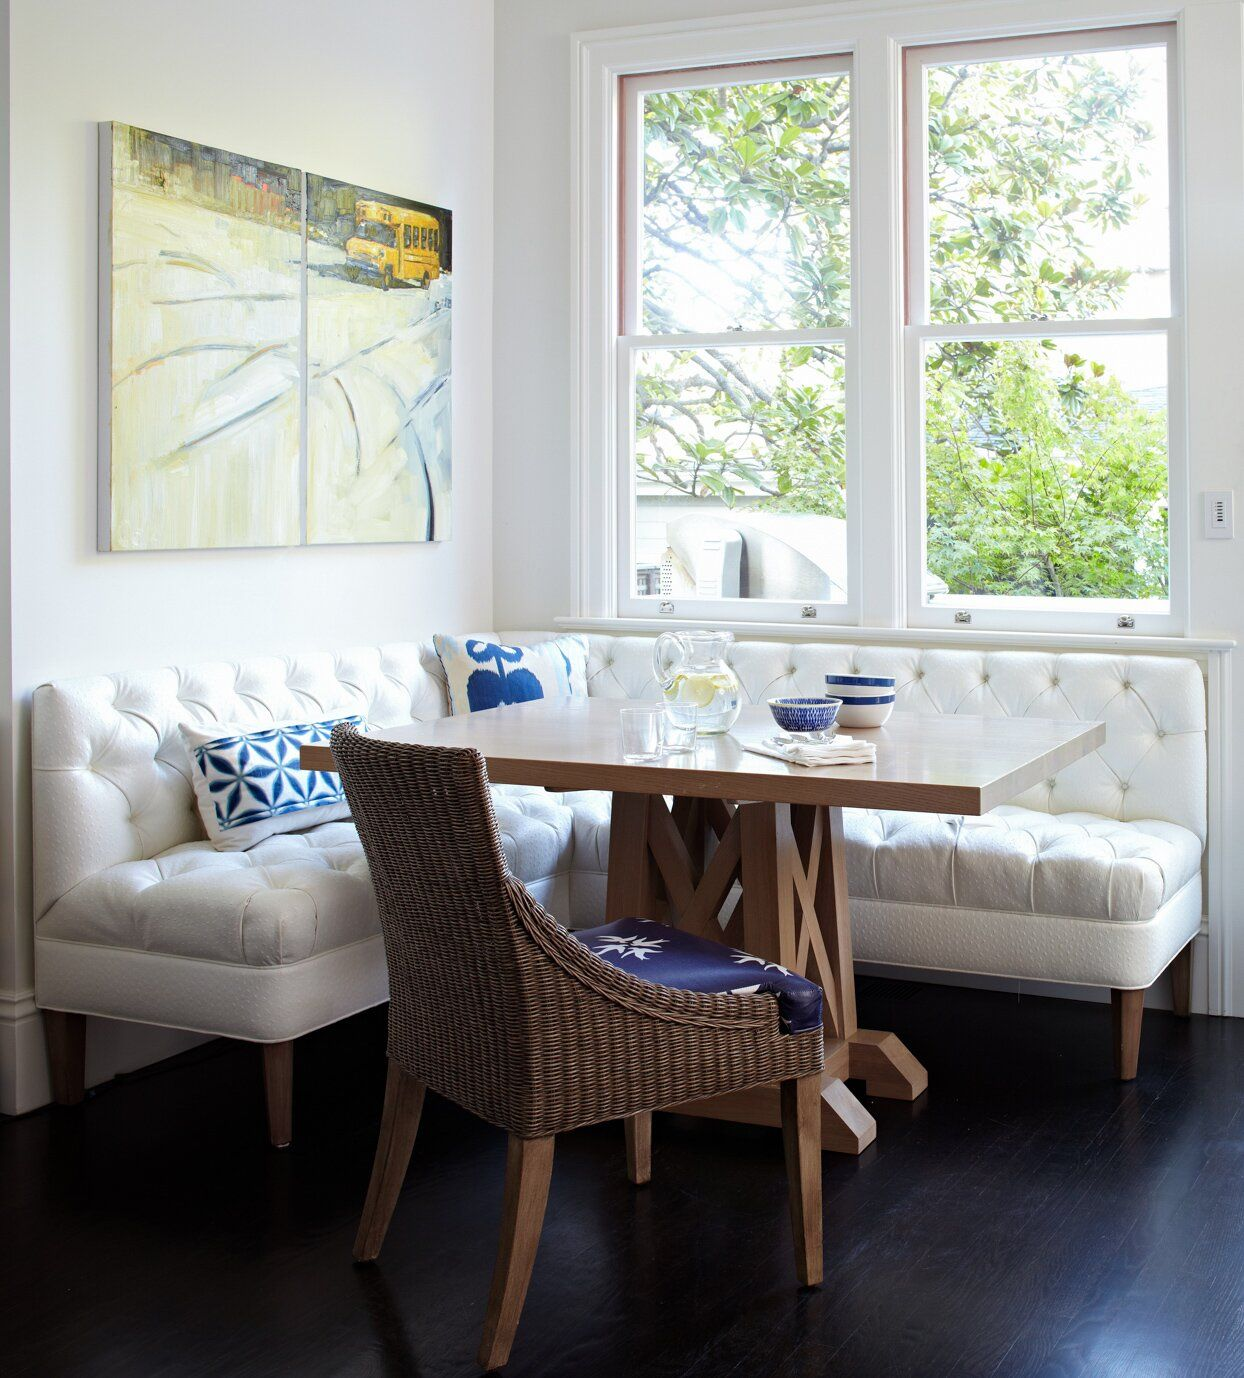 25 Eat-In Kitchens Perfect for Casual Family Dining